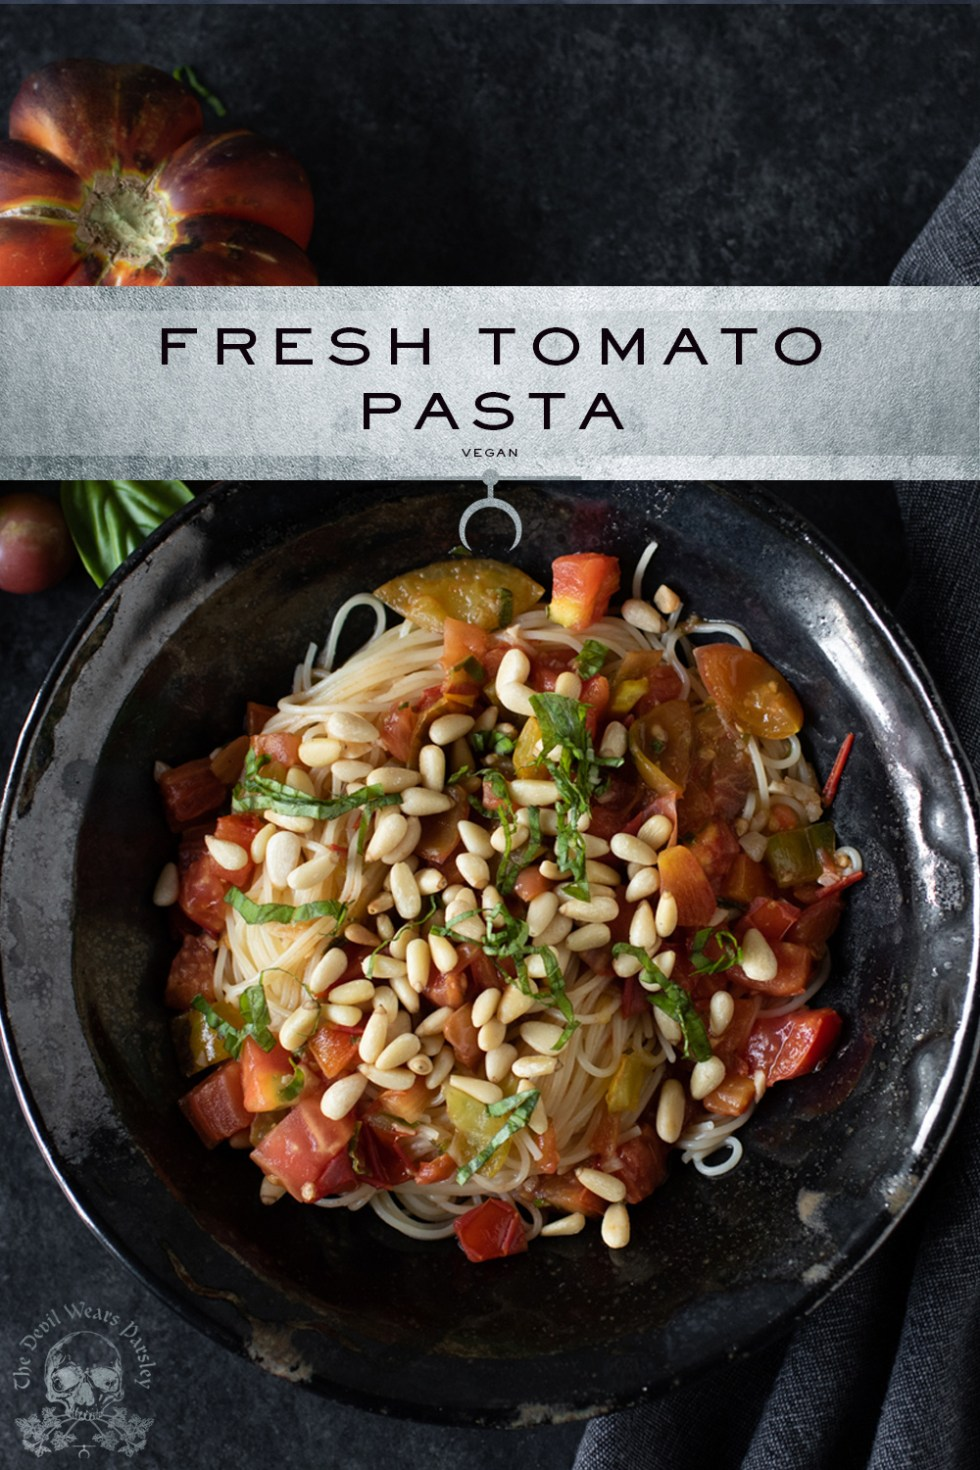 Fresh garden tomatoes and basil are the star of this simple pasta pomodoro.